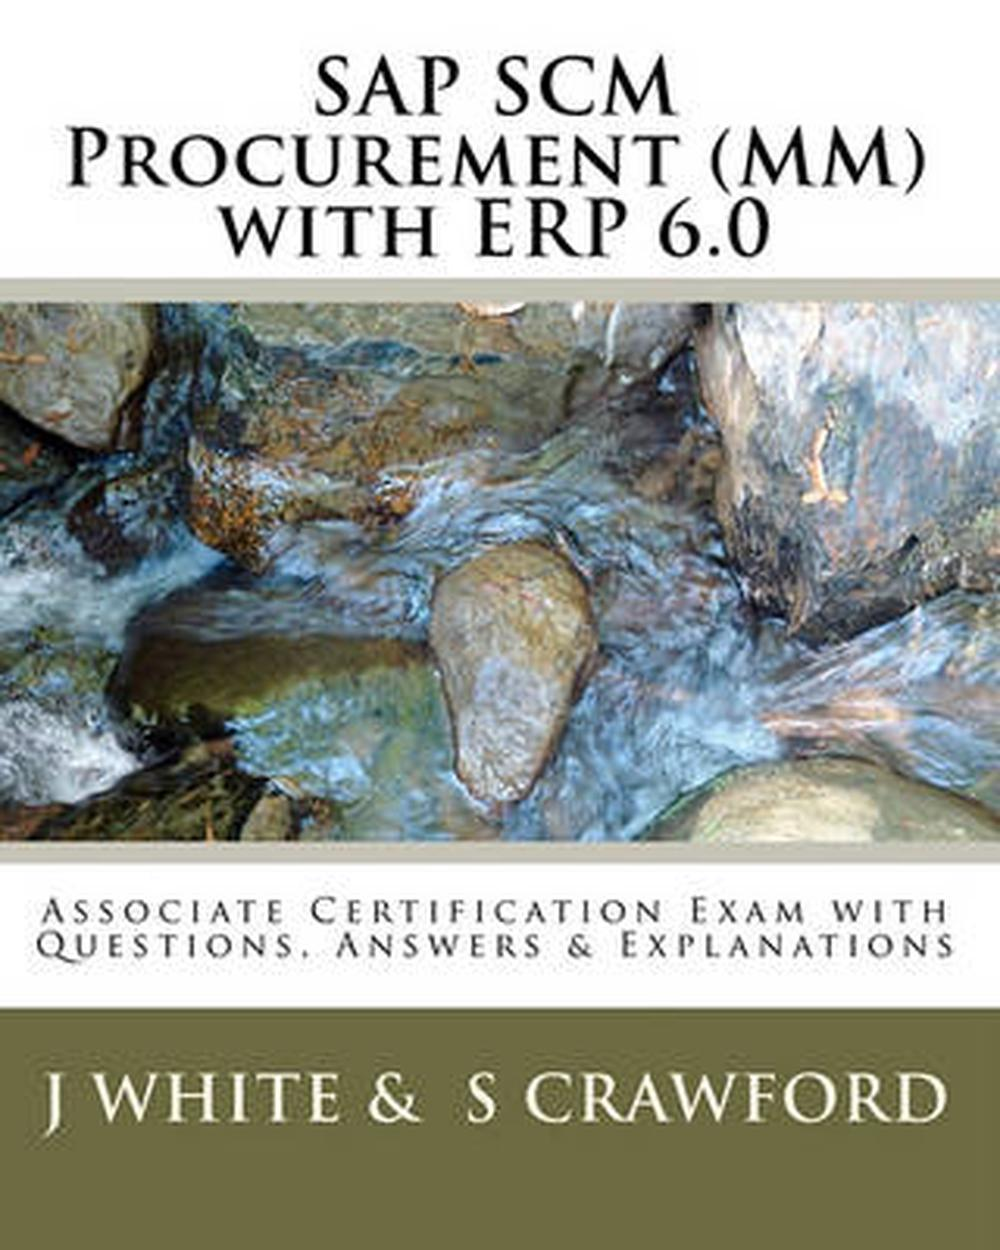 hight resolution of sap scm procurement mm with erp 6 0 associate certification exam with questions answers explanations